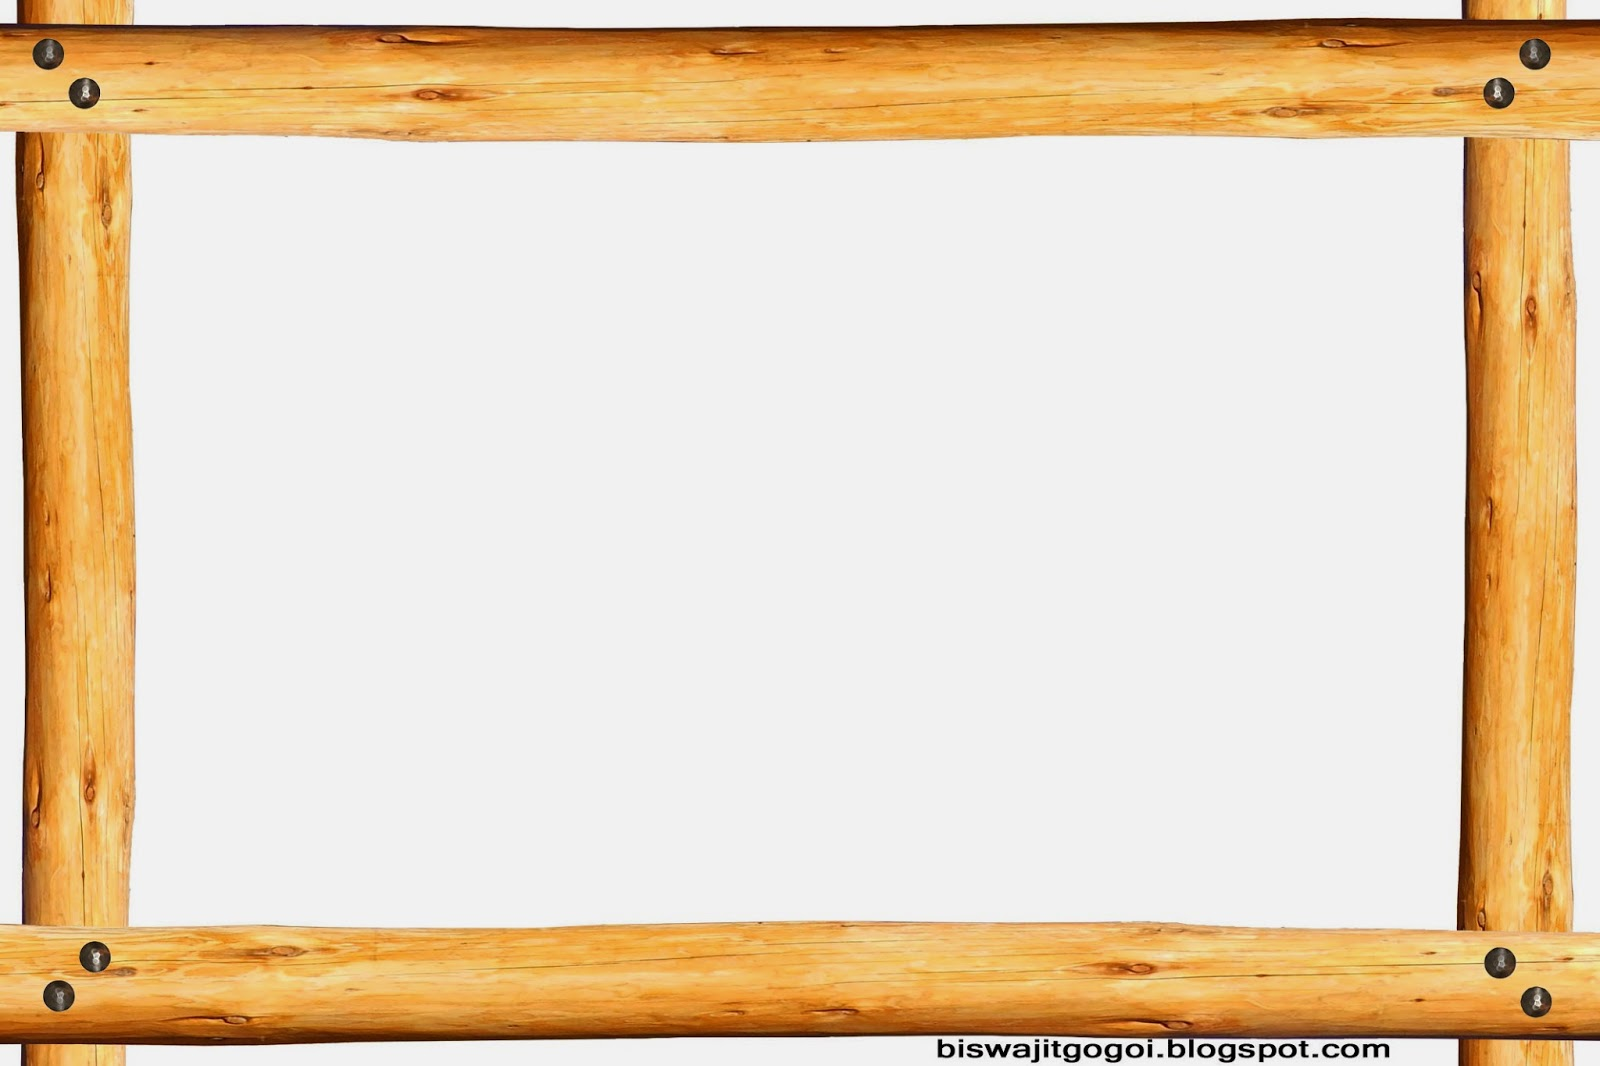 Free border cliparts download. Boarder clipart wood